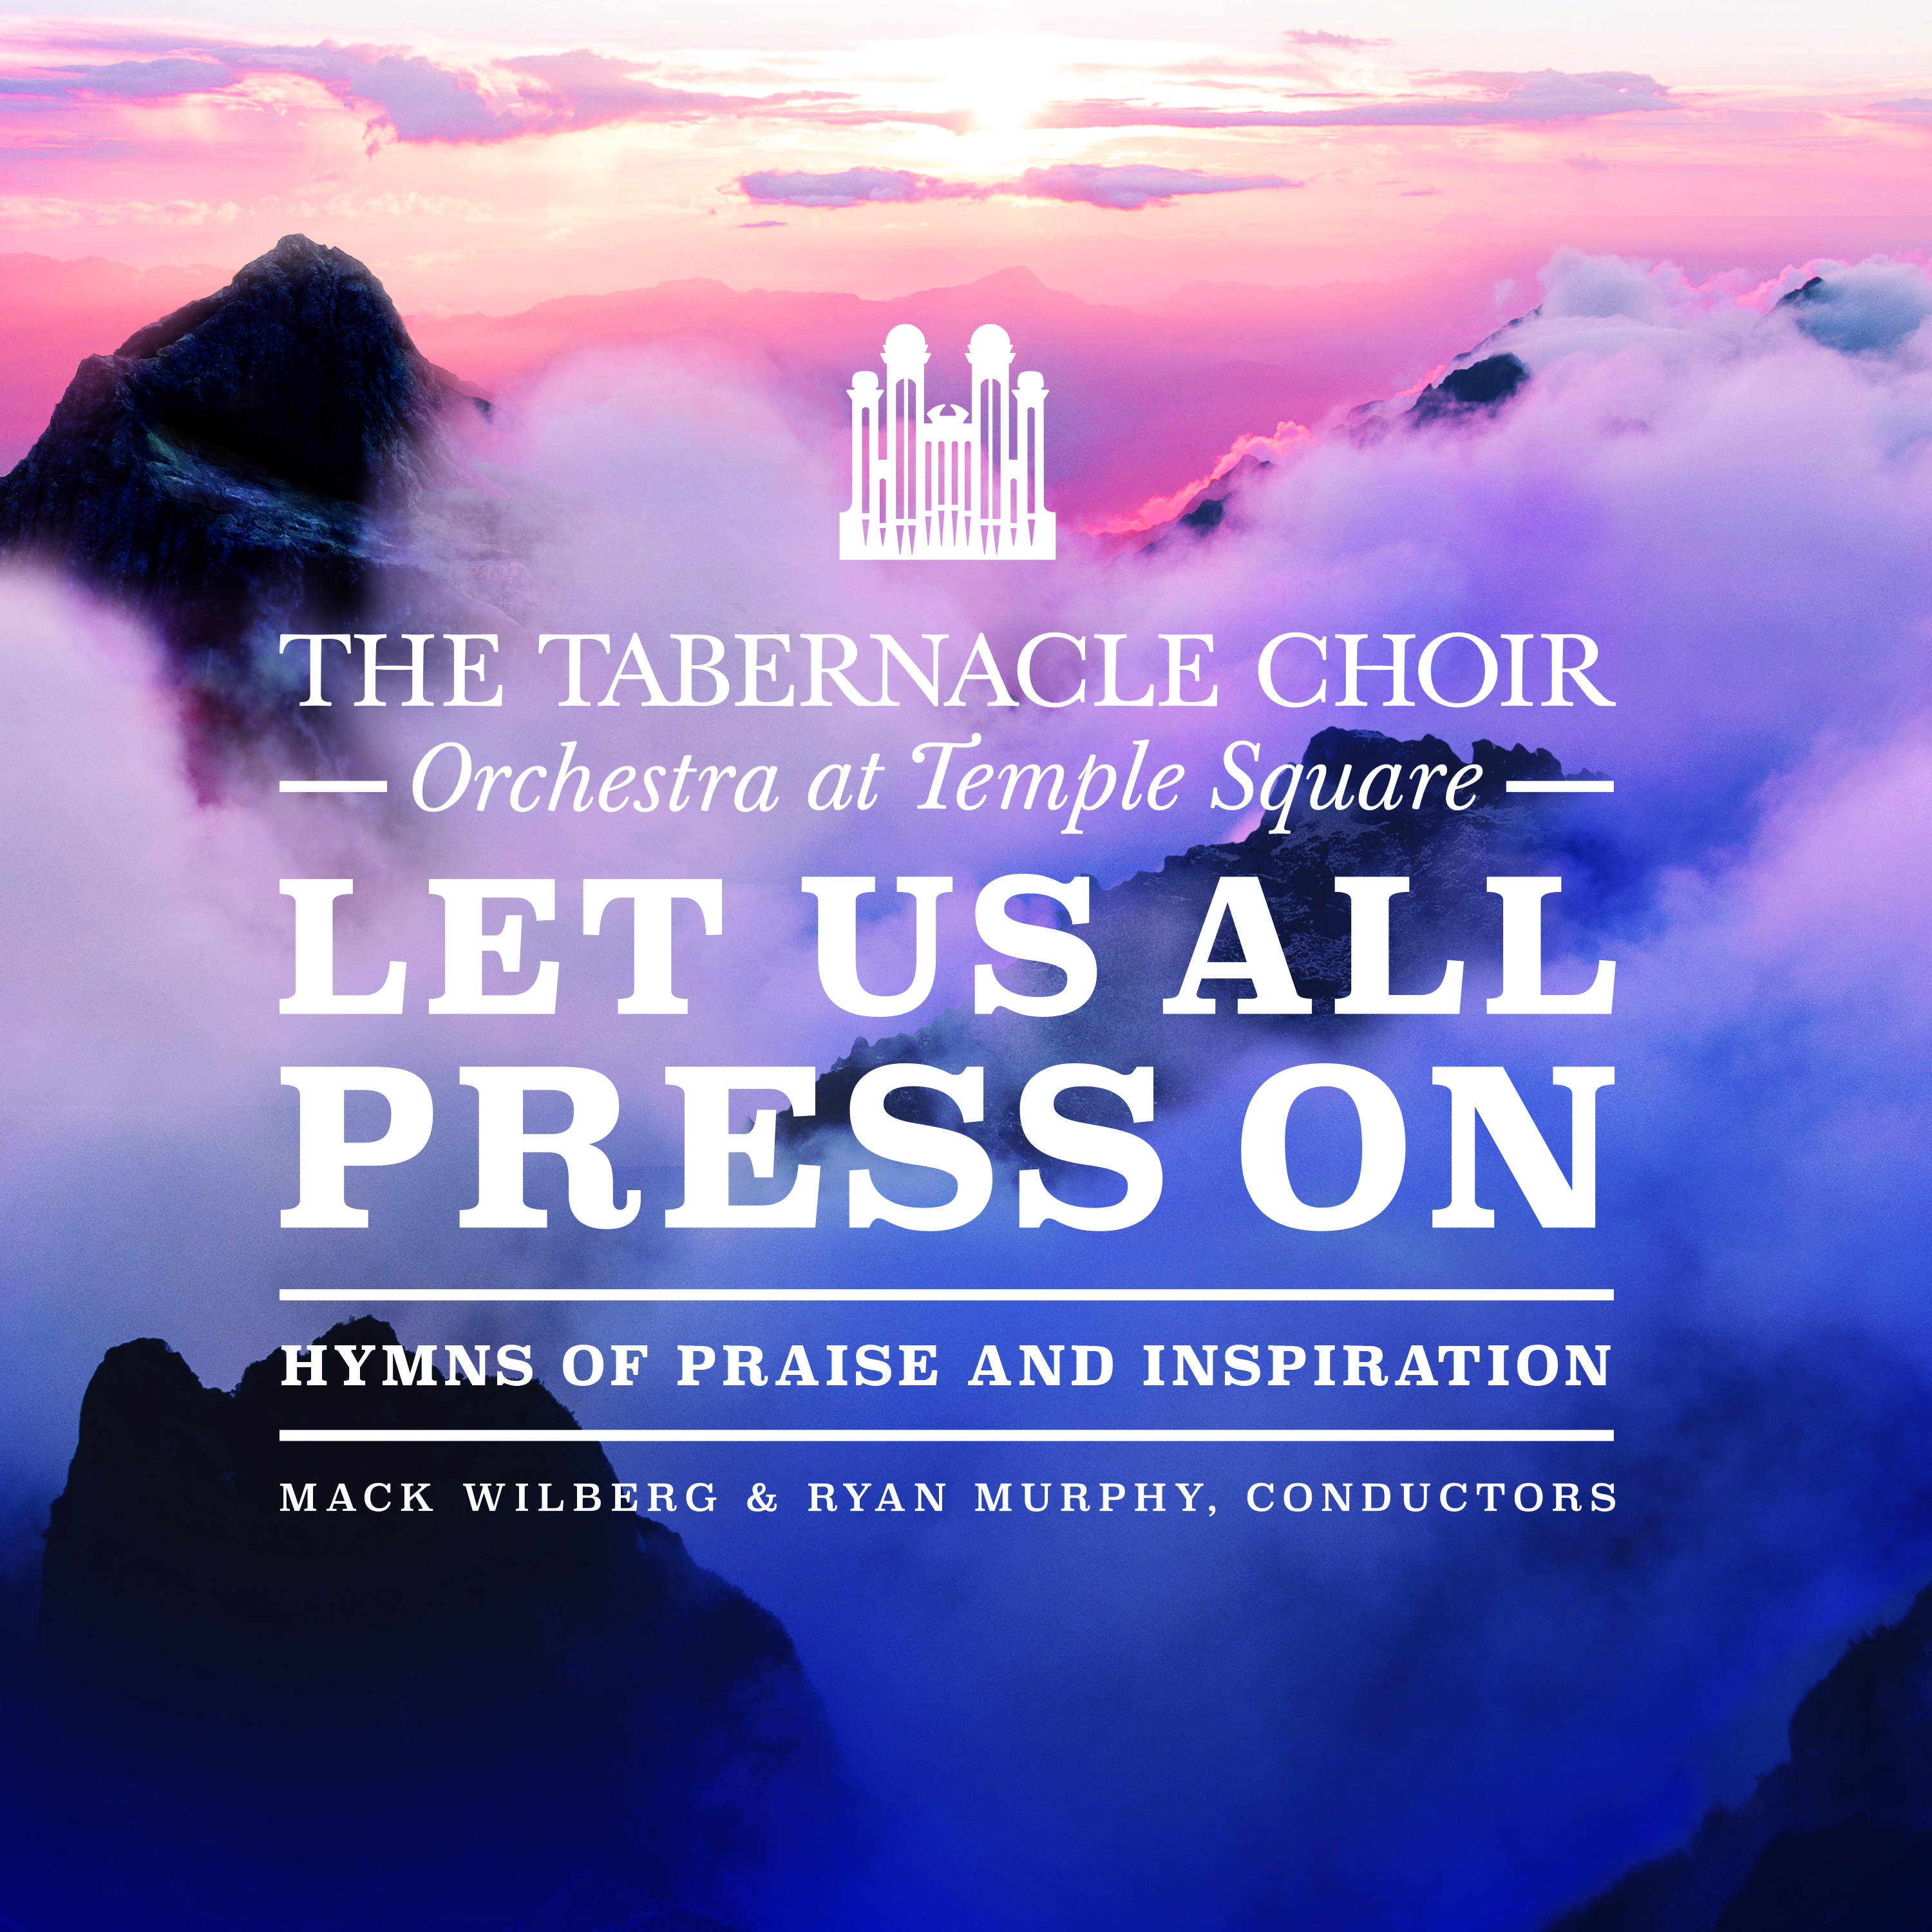 """The Tabernacle Choir and Orchestra at Temple Square will release its new album — """"Let Us All Press On: Hymns of Praise and Inspiration"""" — on March 8, 2019."""